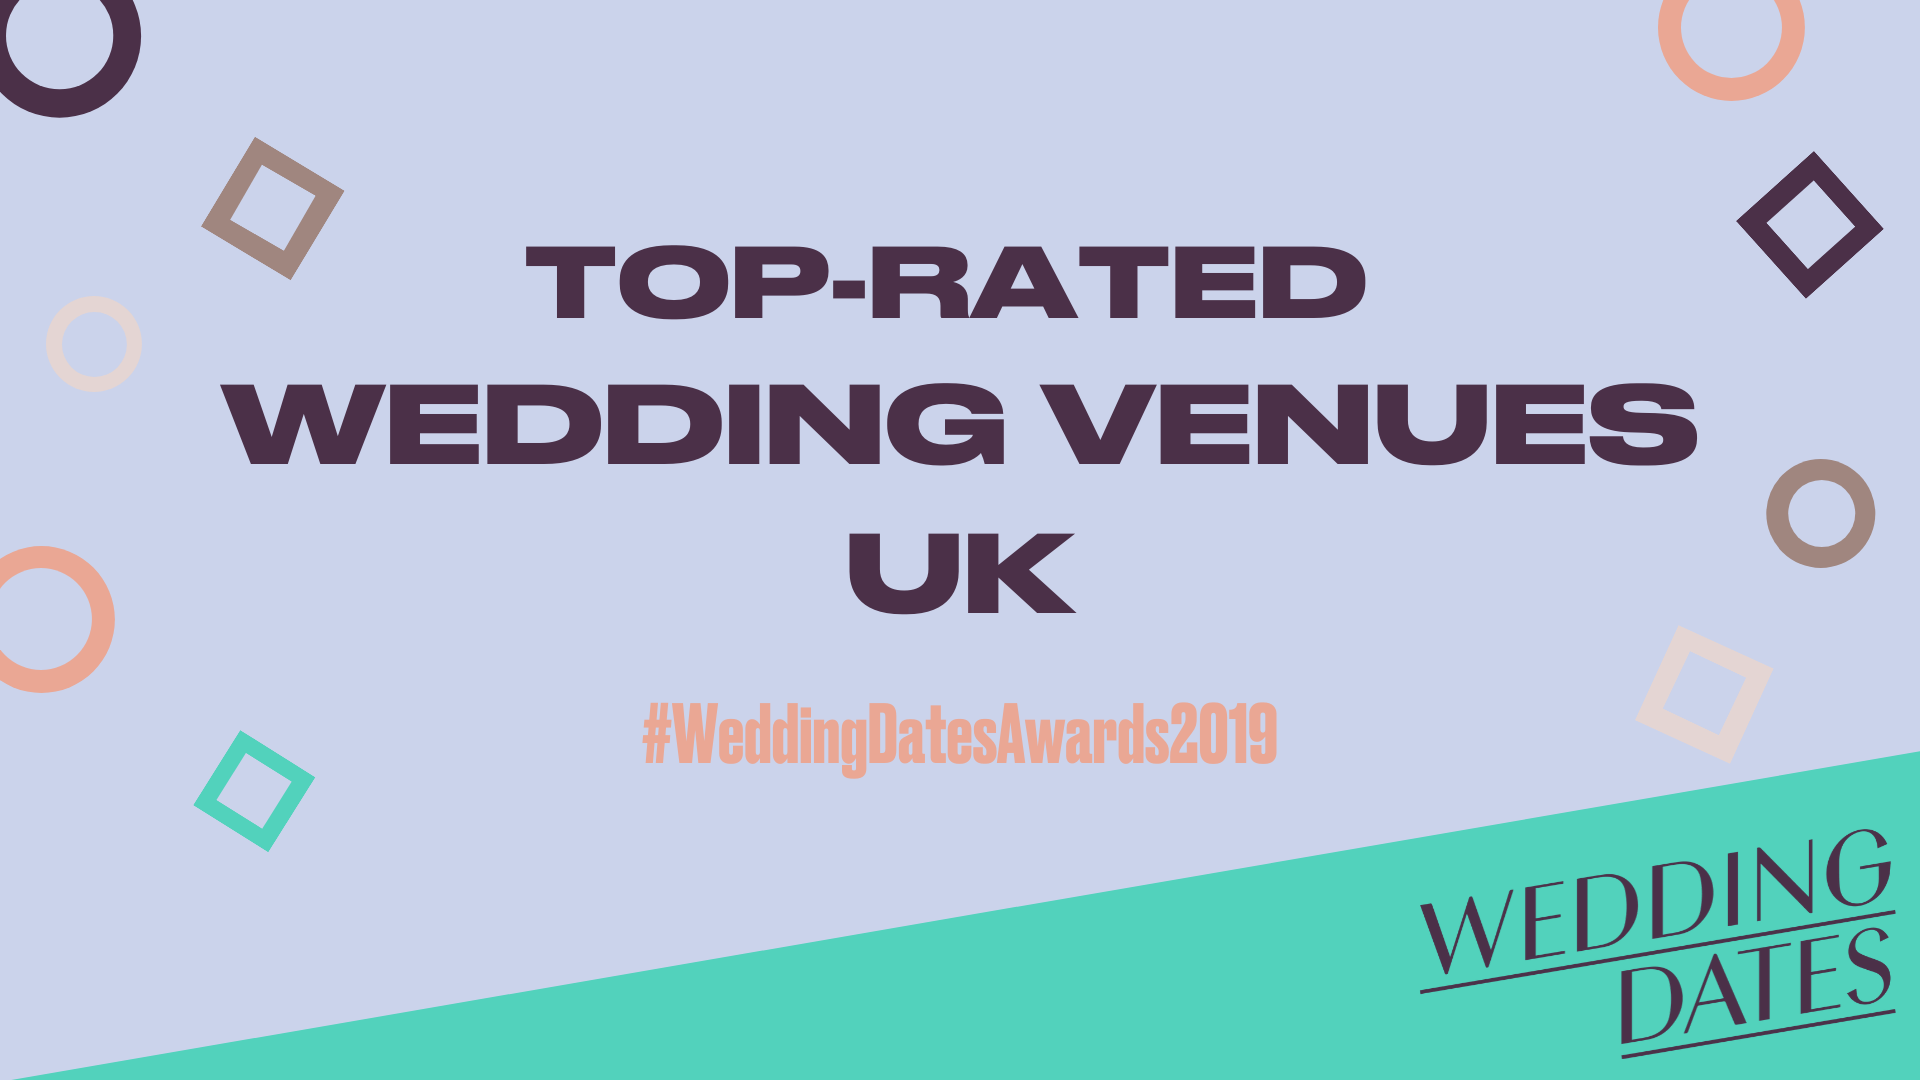 WEDDINGDATES AWARDS 2019 - TOP RATED WEDDING VENUES ANNOUNCED